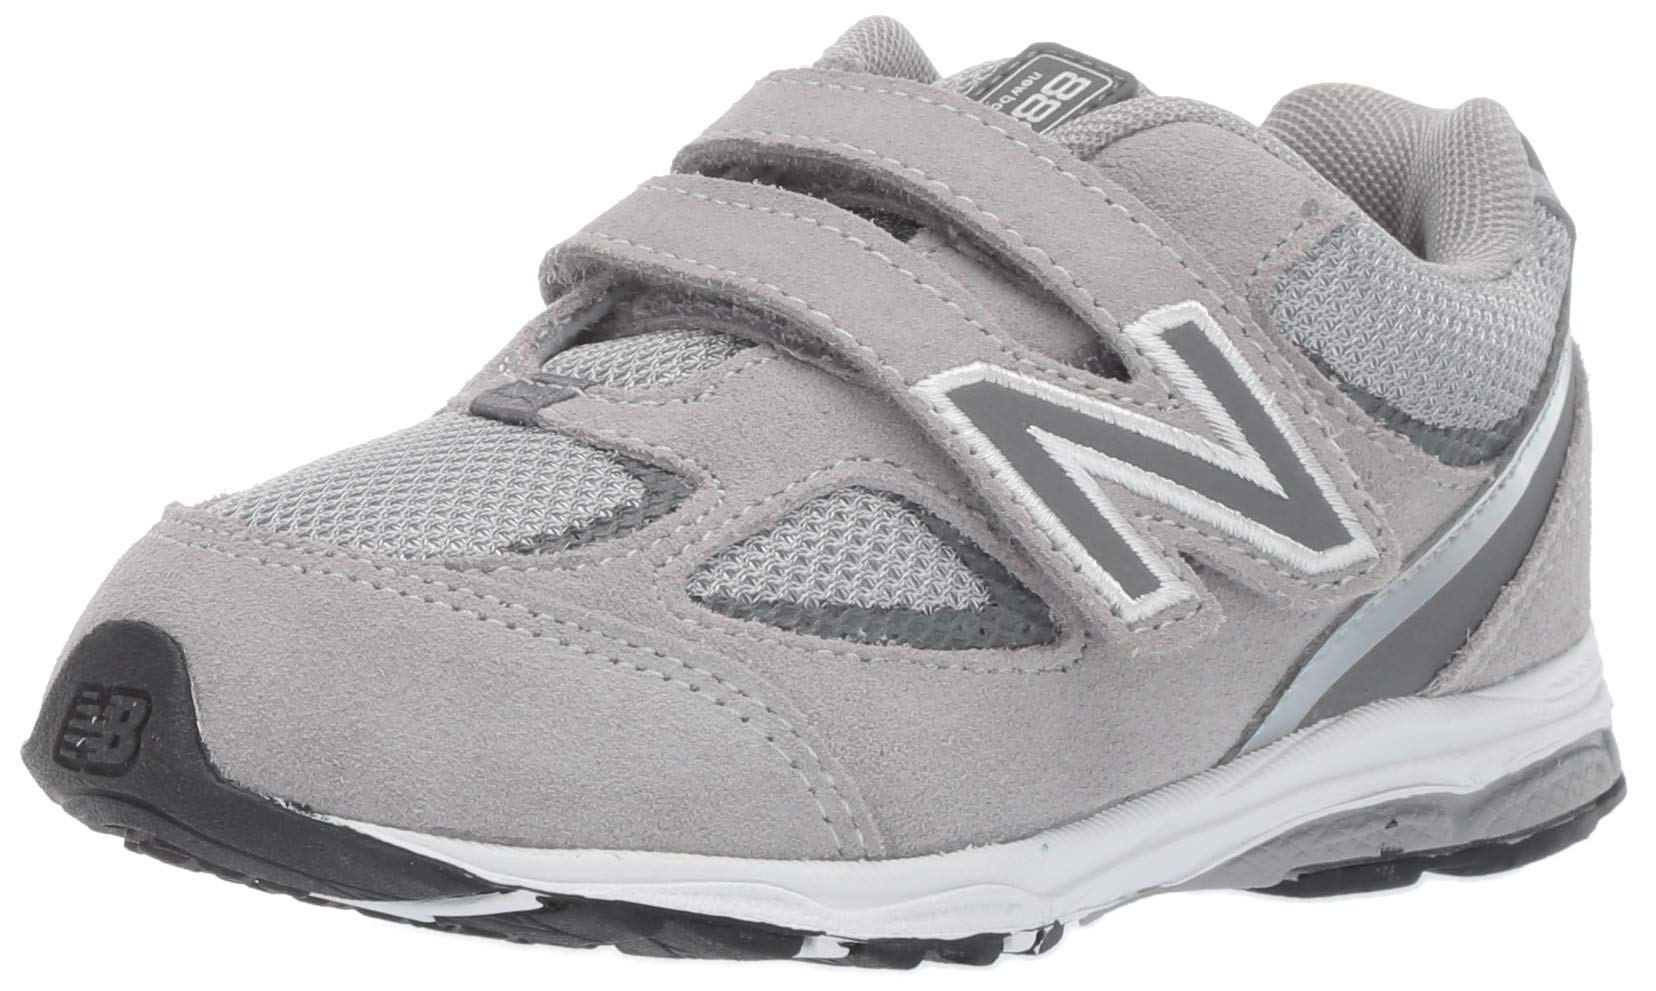 New Balance Boys' 888v2 Hook and Loop Running Shoe Grey, 2 M US Infant by New Balance (Image #1)